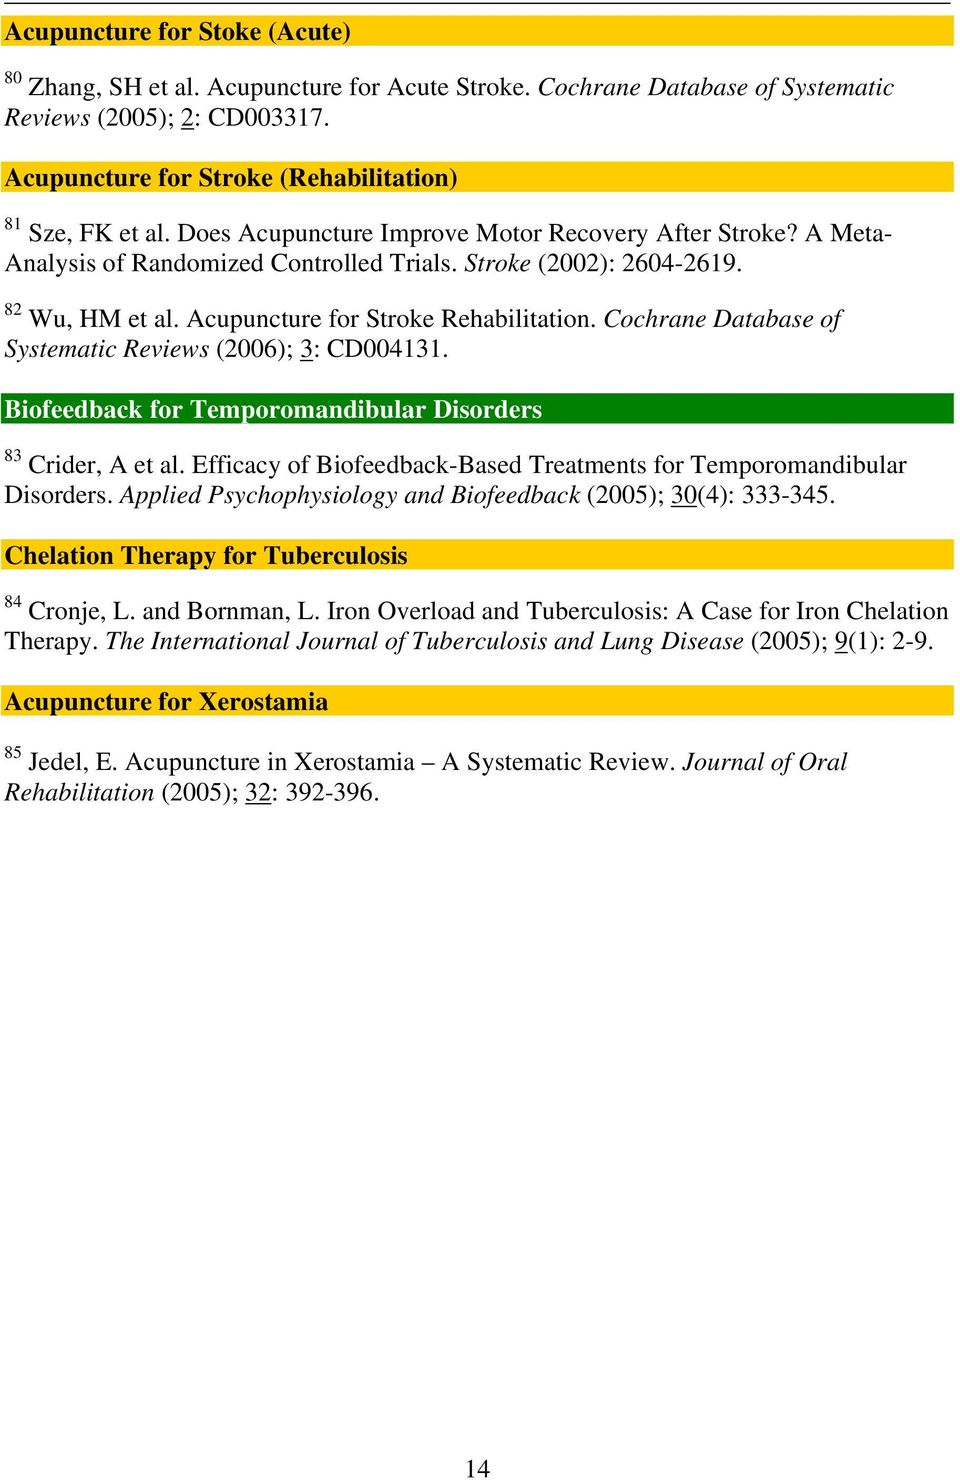 Cochrane Database of Systematic Reviews (2006); 3: CD004131. Biofeedback for Temporomandibular Disorders 83 Crider, A et al. Efficacy of Biofeedback-Based Treatments for Temporomandibular Disorders.